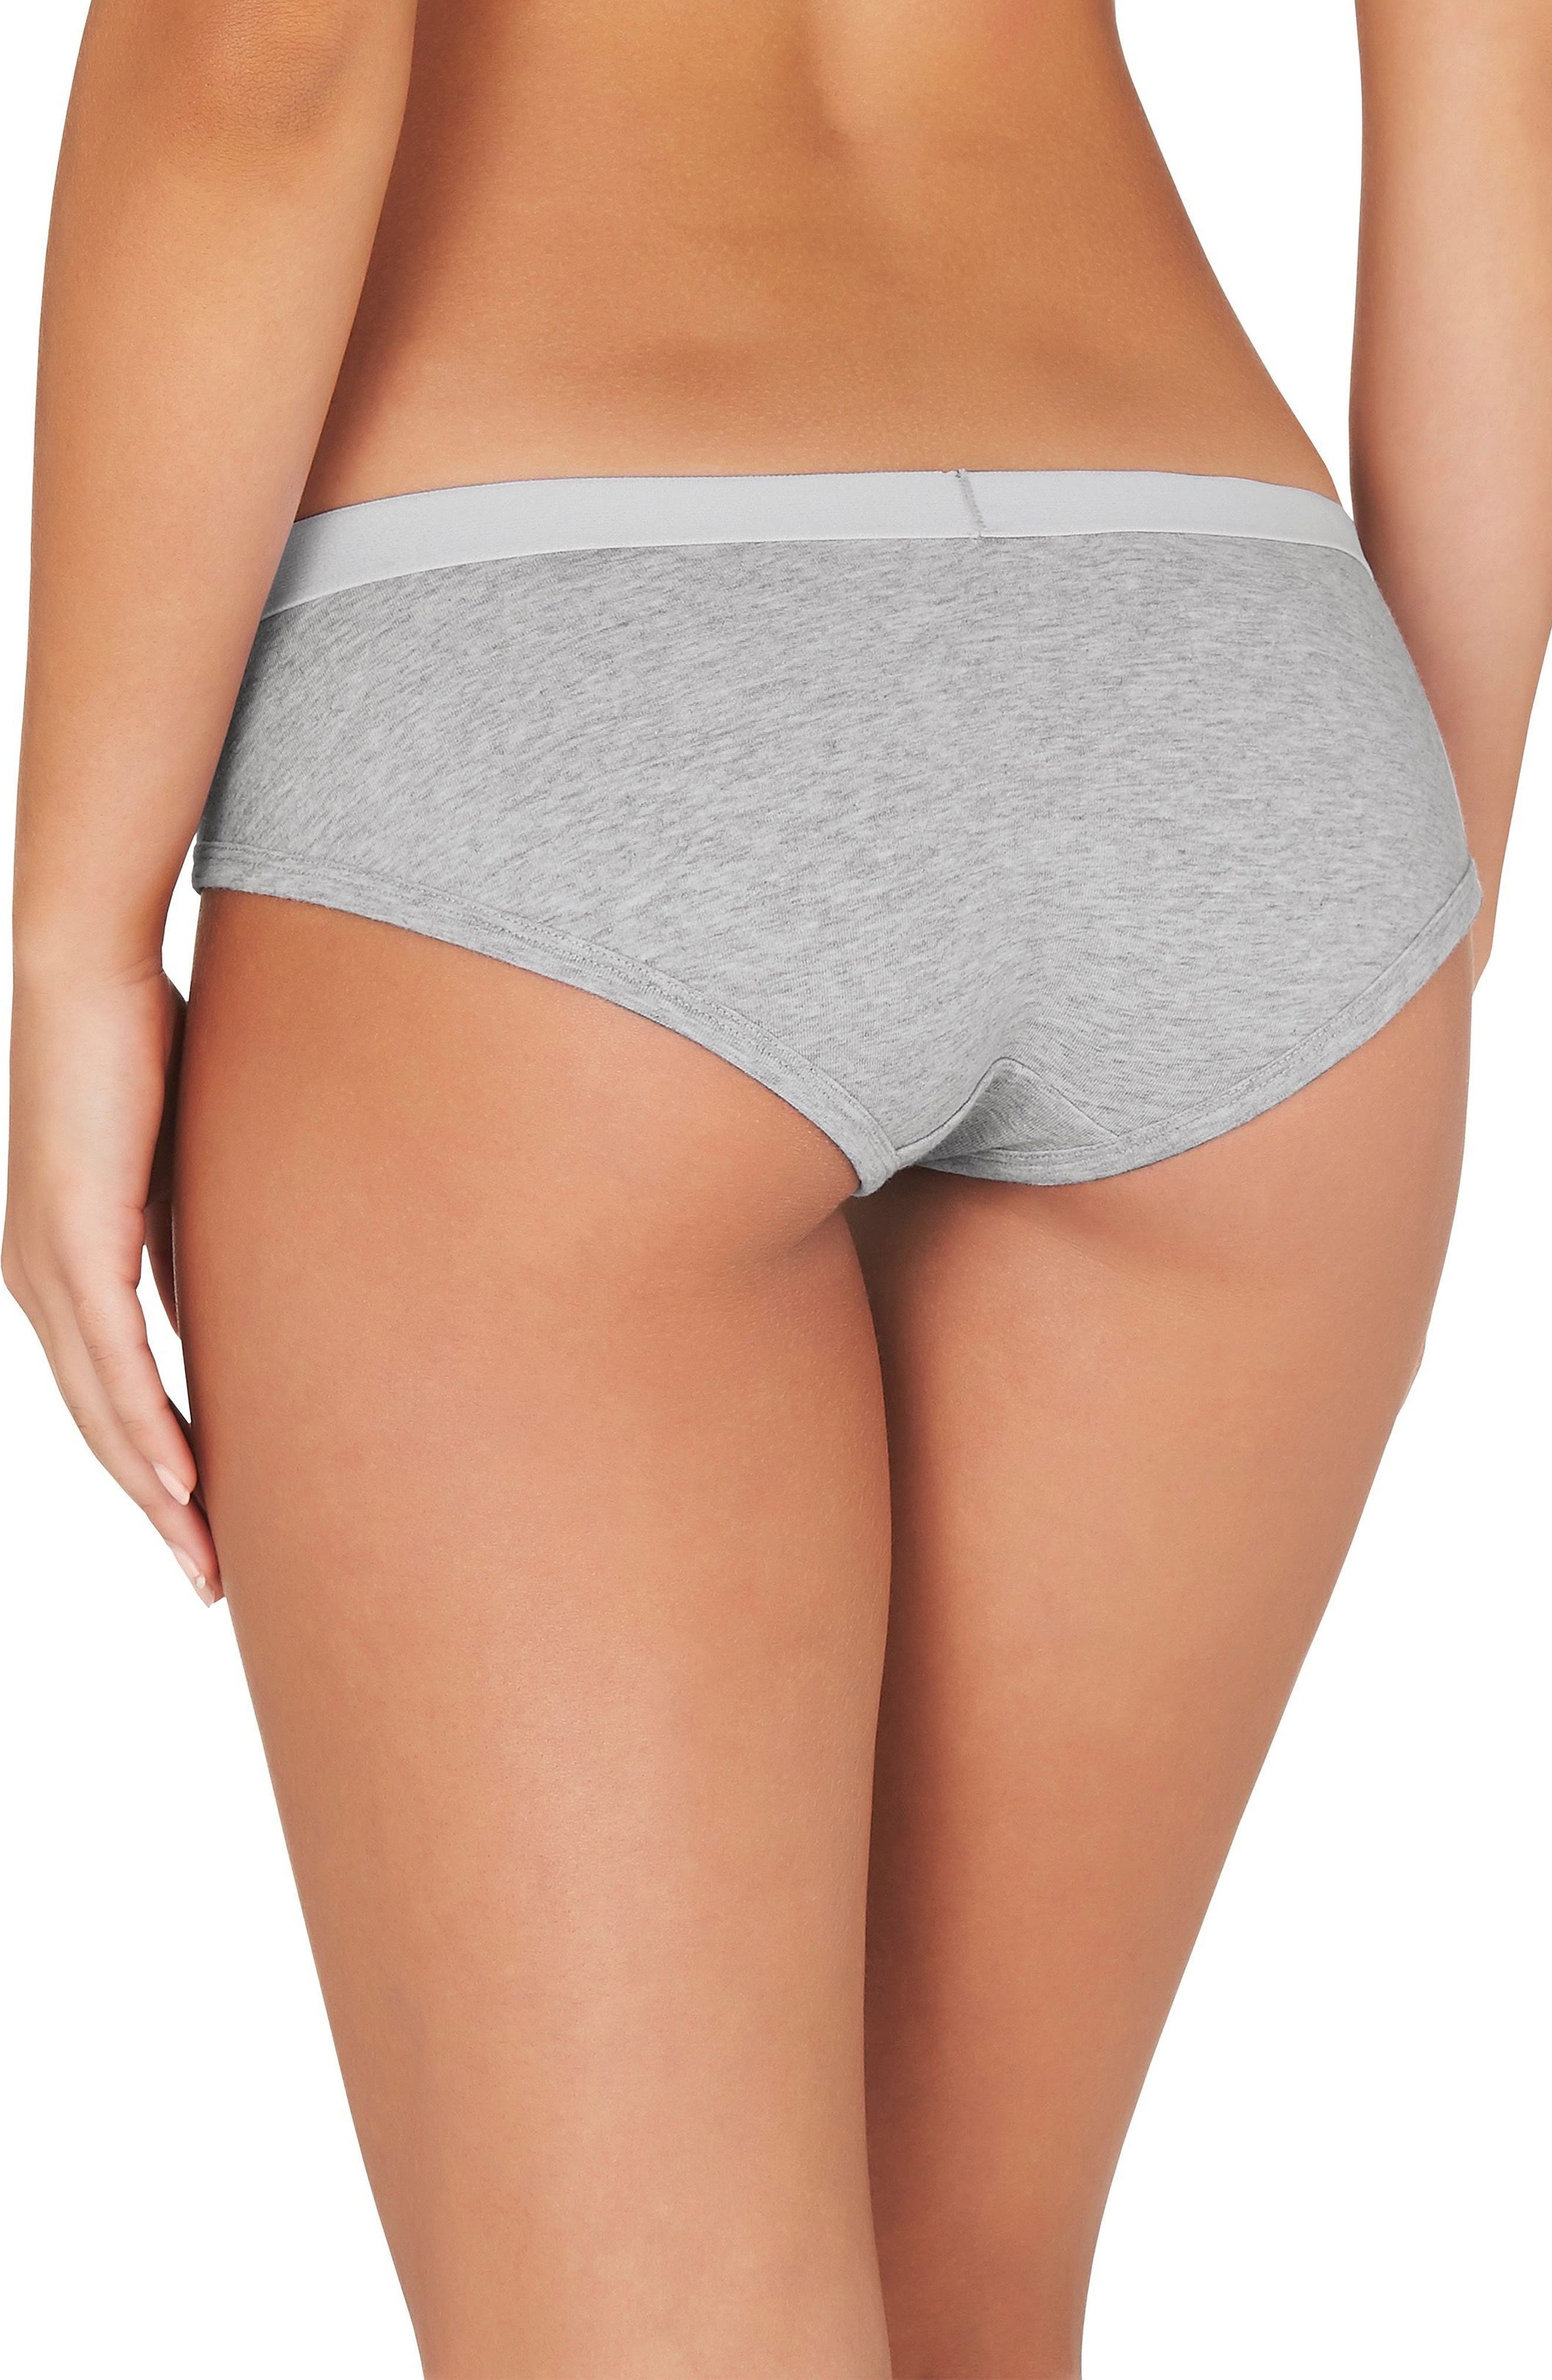 2-Pack Stretch Organic Cotton Hipster Girlfriend Panties,                             Alternate thumbnail 3, color,                             Grey Marle